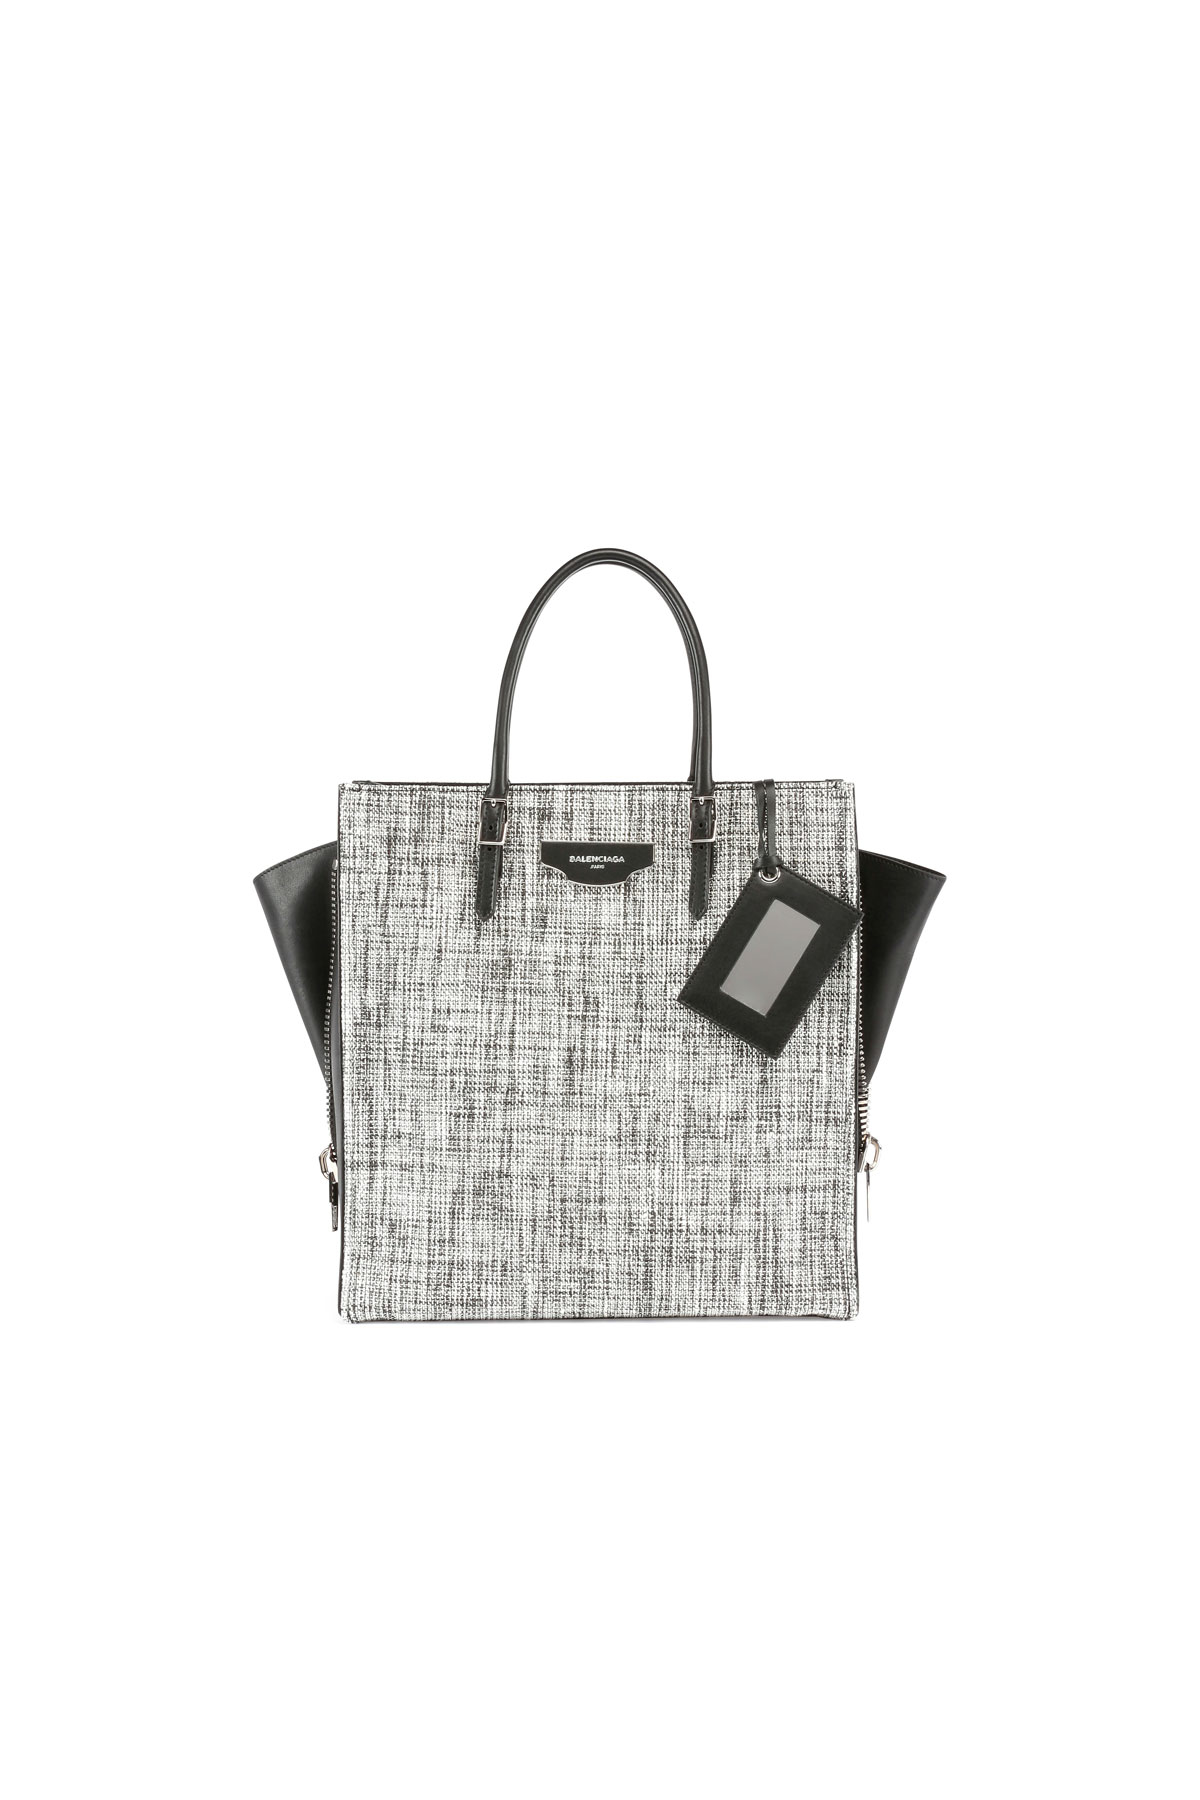 721cbdb5288a Lyst - Balenciaga Paper Zip-around Plate Tweed Tote Bag in Black